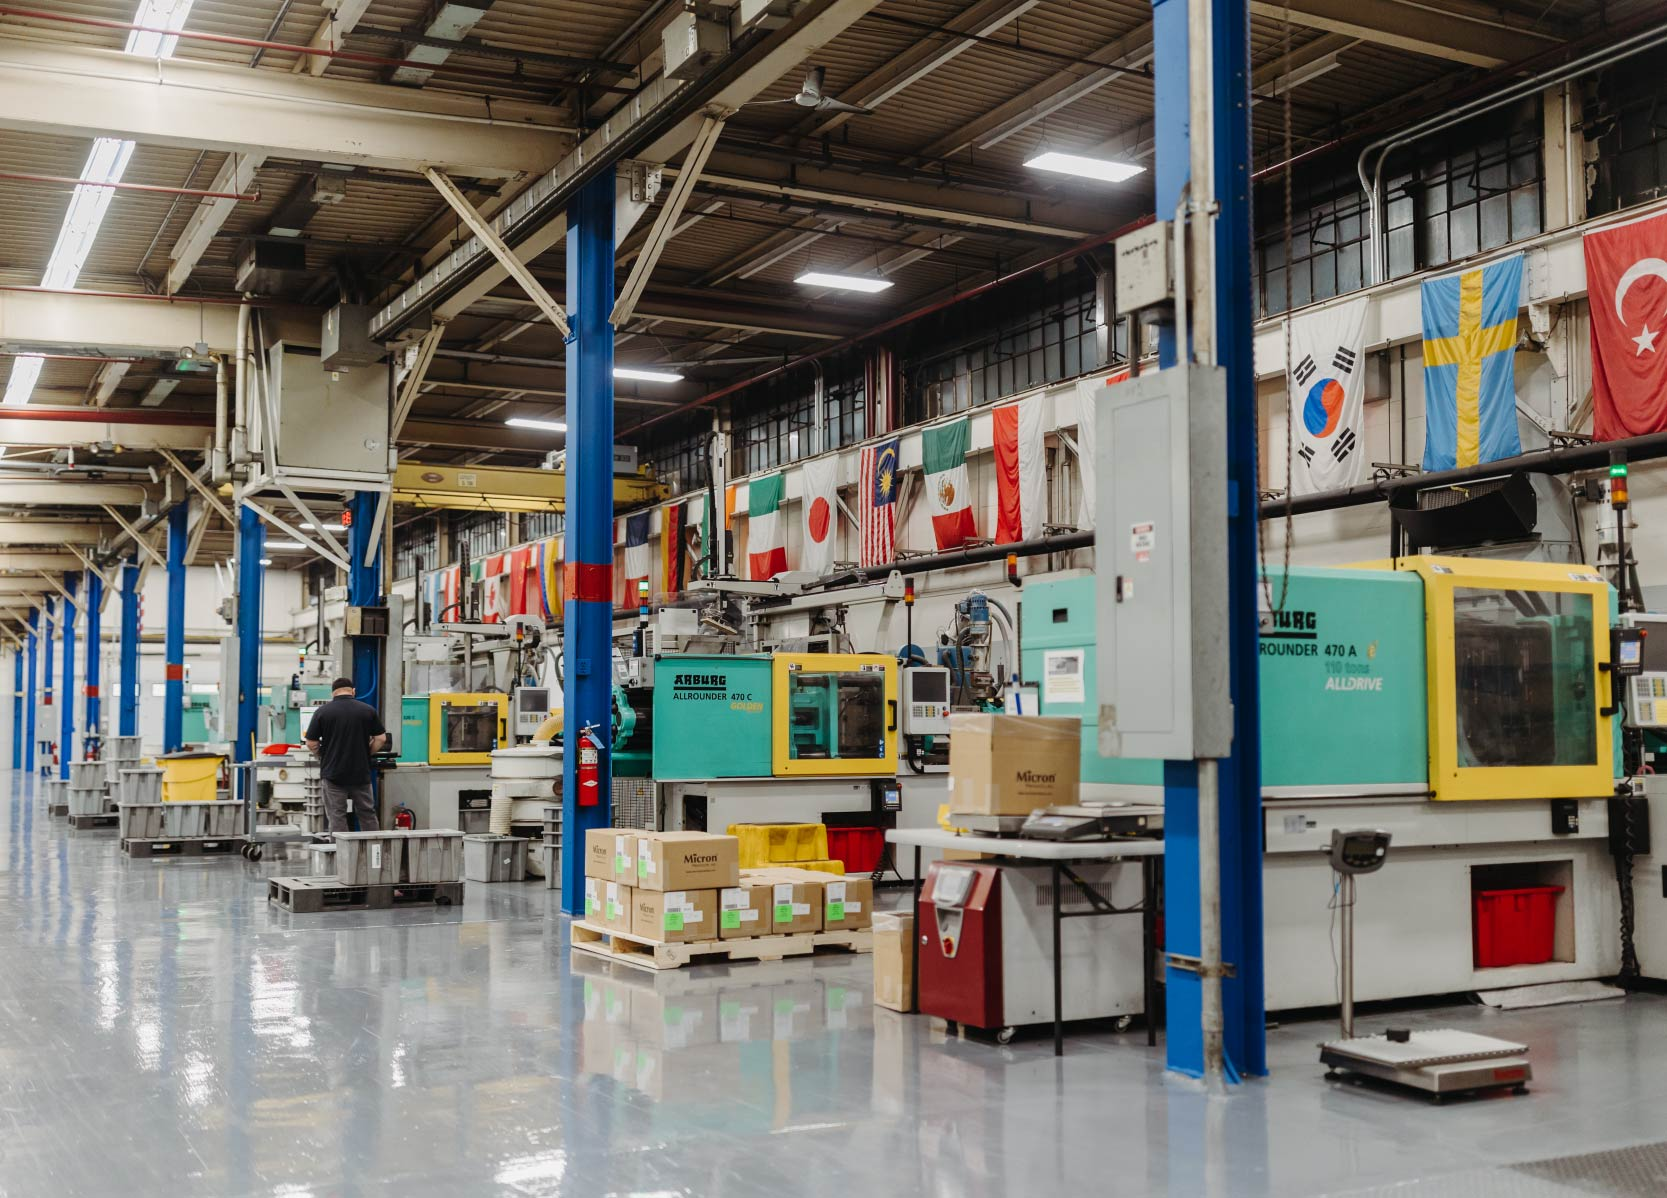 Four Arburg injection molding machines surrounded by flags of different countries